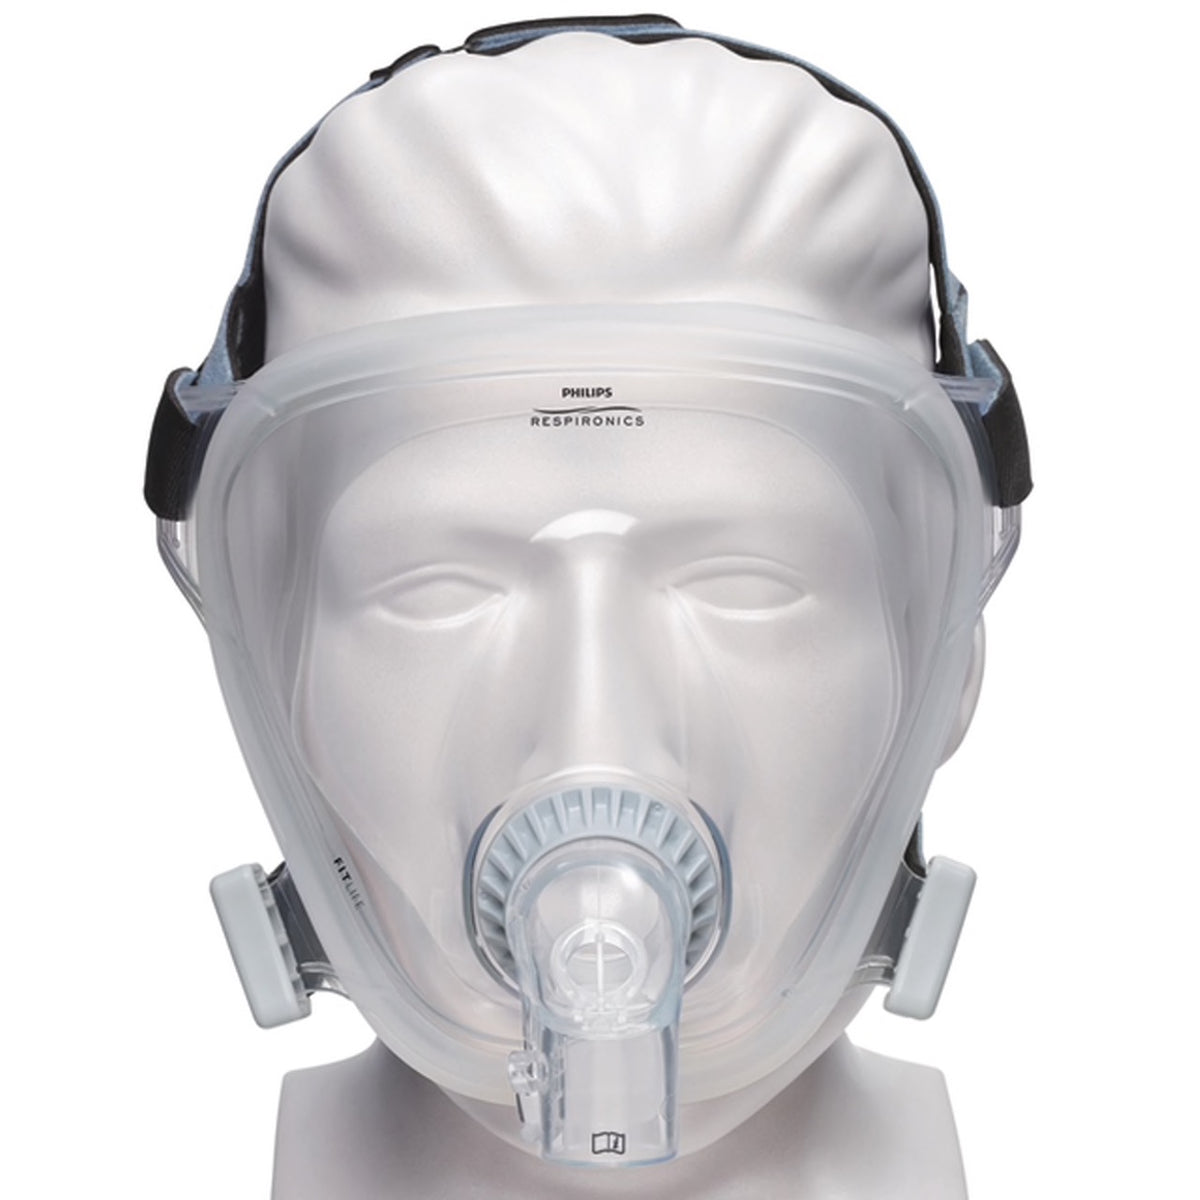 Front view of clear full face mask from FitLife Total Face CPAP Mask With Black Headgear by Phillips Respironics.